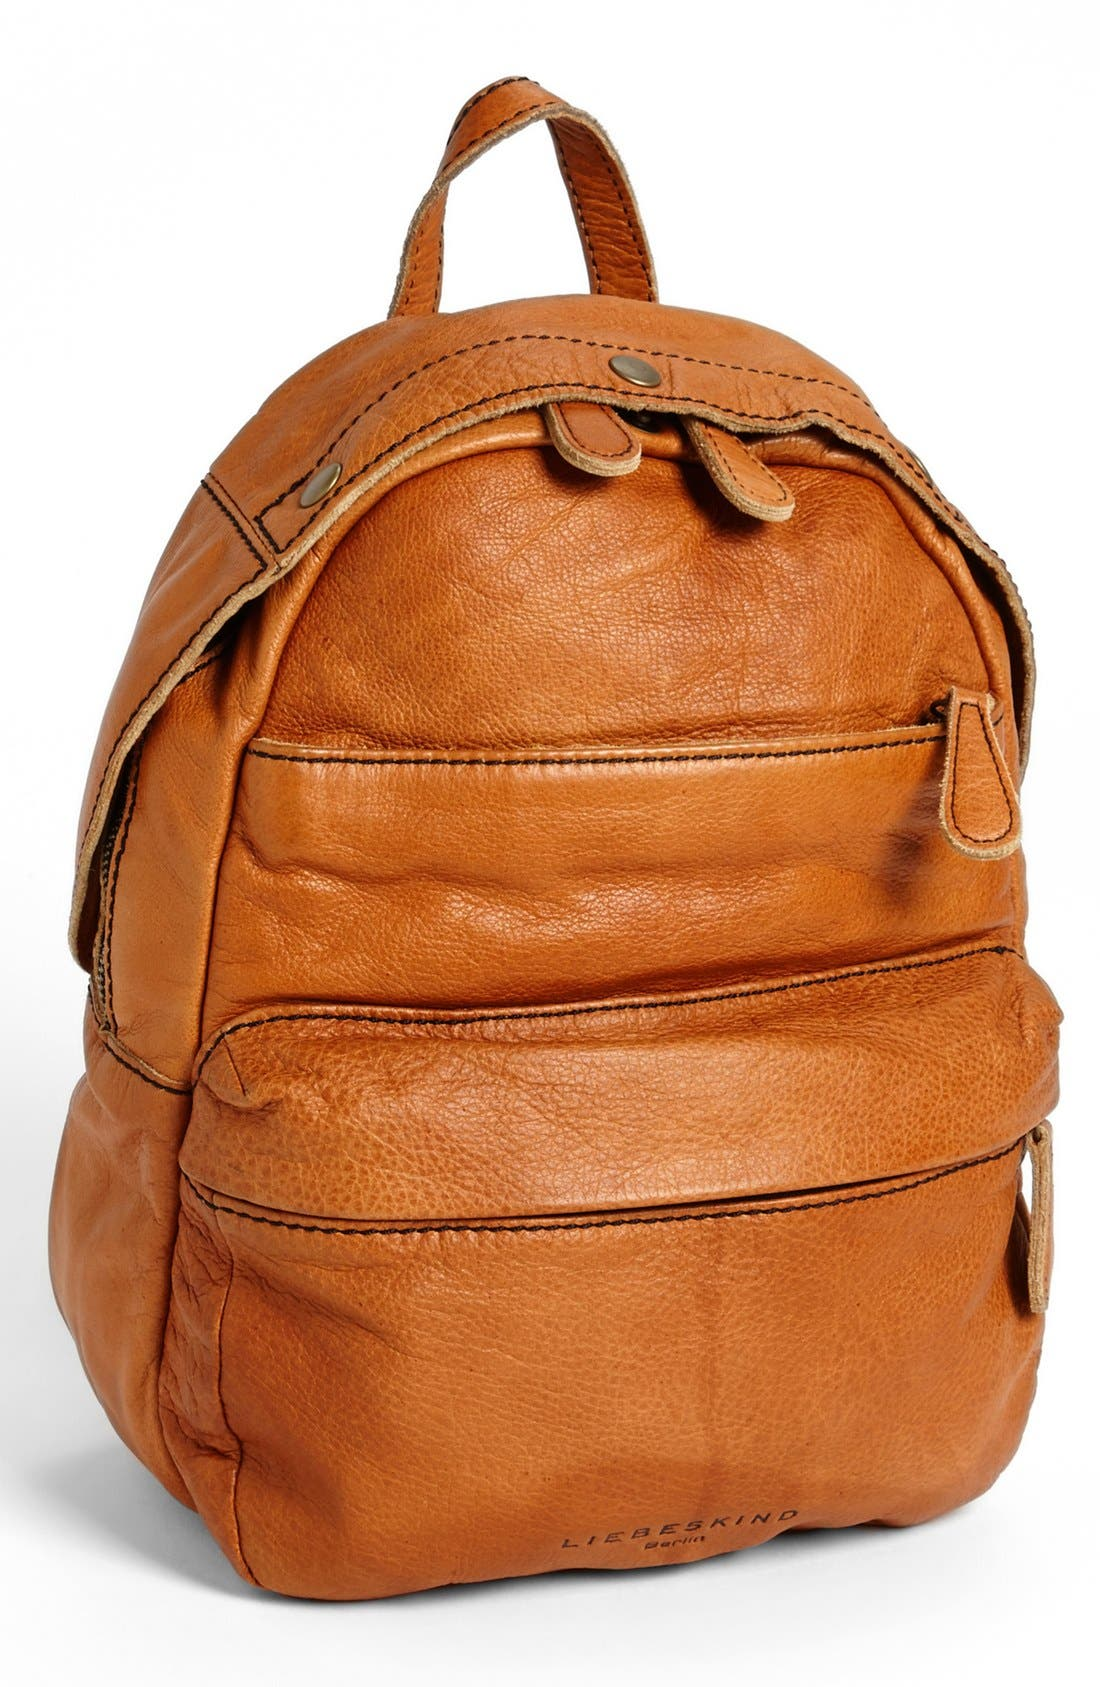 LIEBESKIND 'Lora' Leather Backpack, Main, color, 250